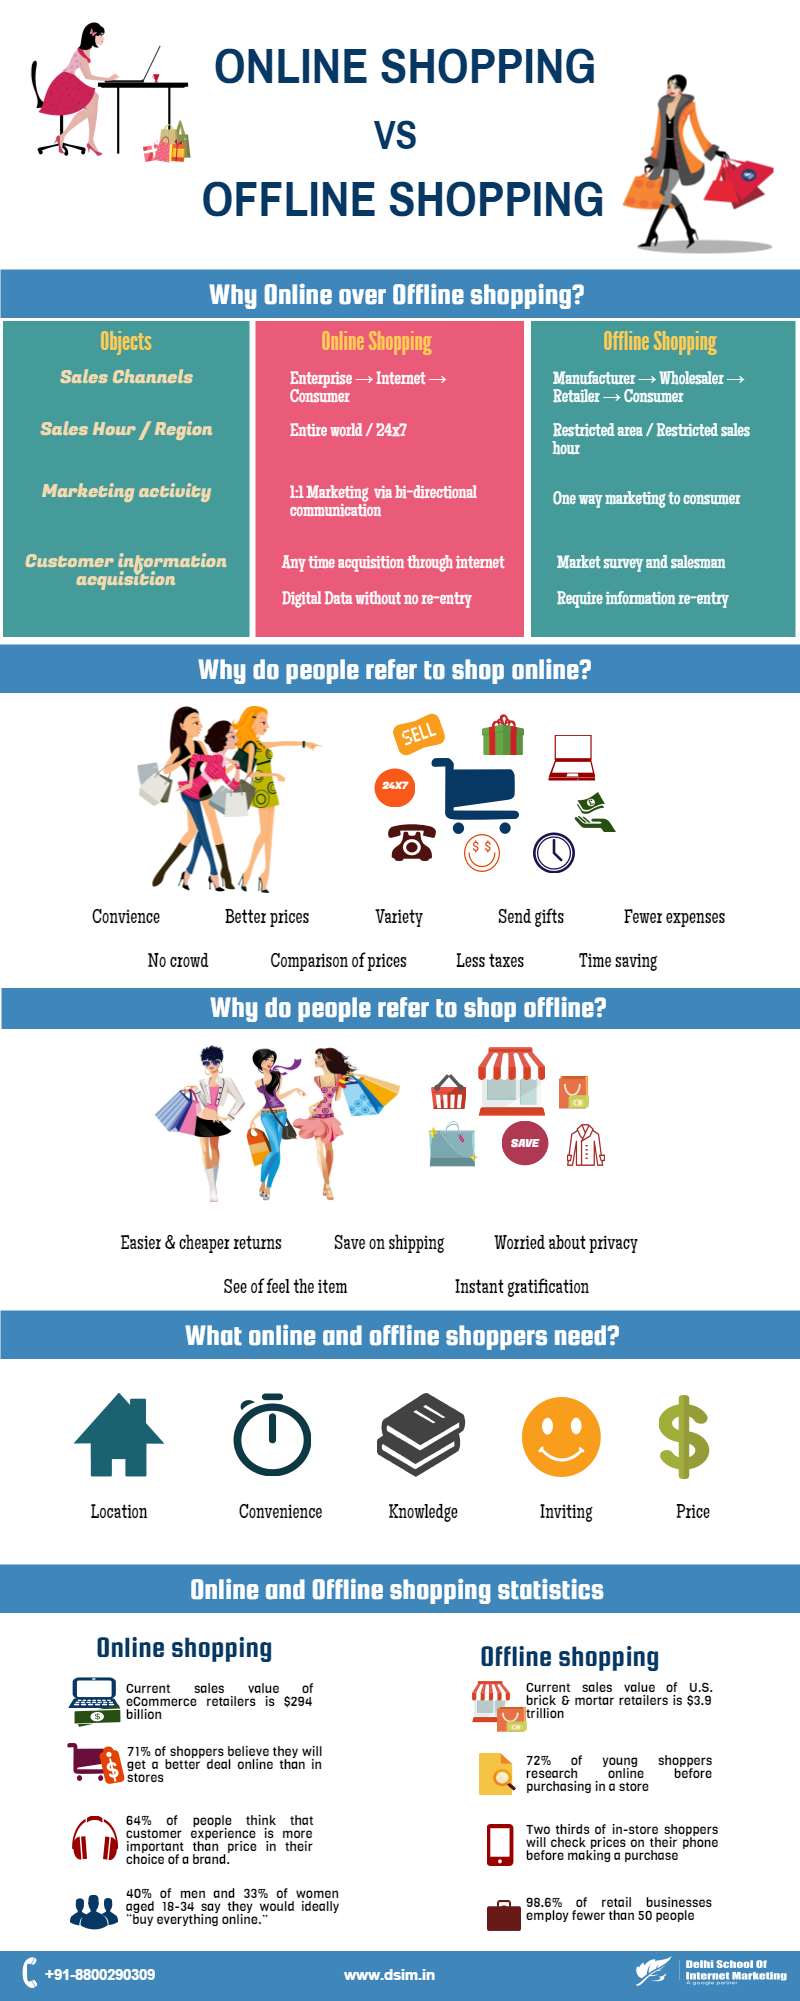 online shopping versus traditional in store shopping marketing essay Traditional vs online shopping essay example the world is changing much has been written about the death of store based retailing, as we know it, to be replaced by shopping on the internet.